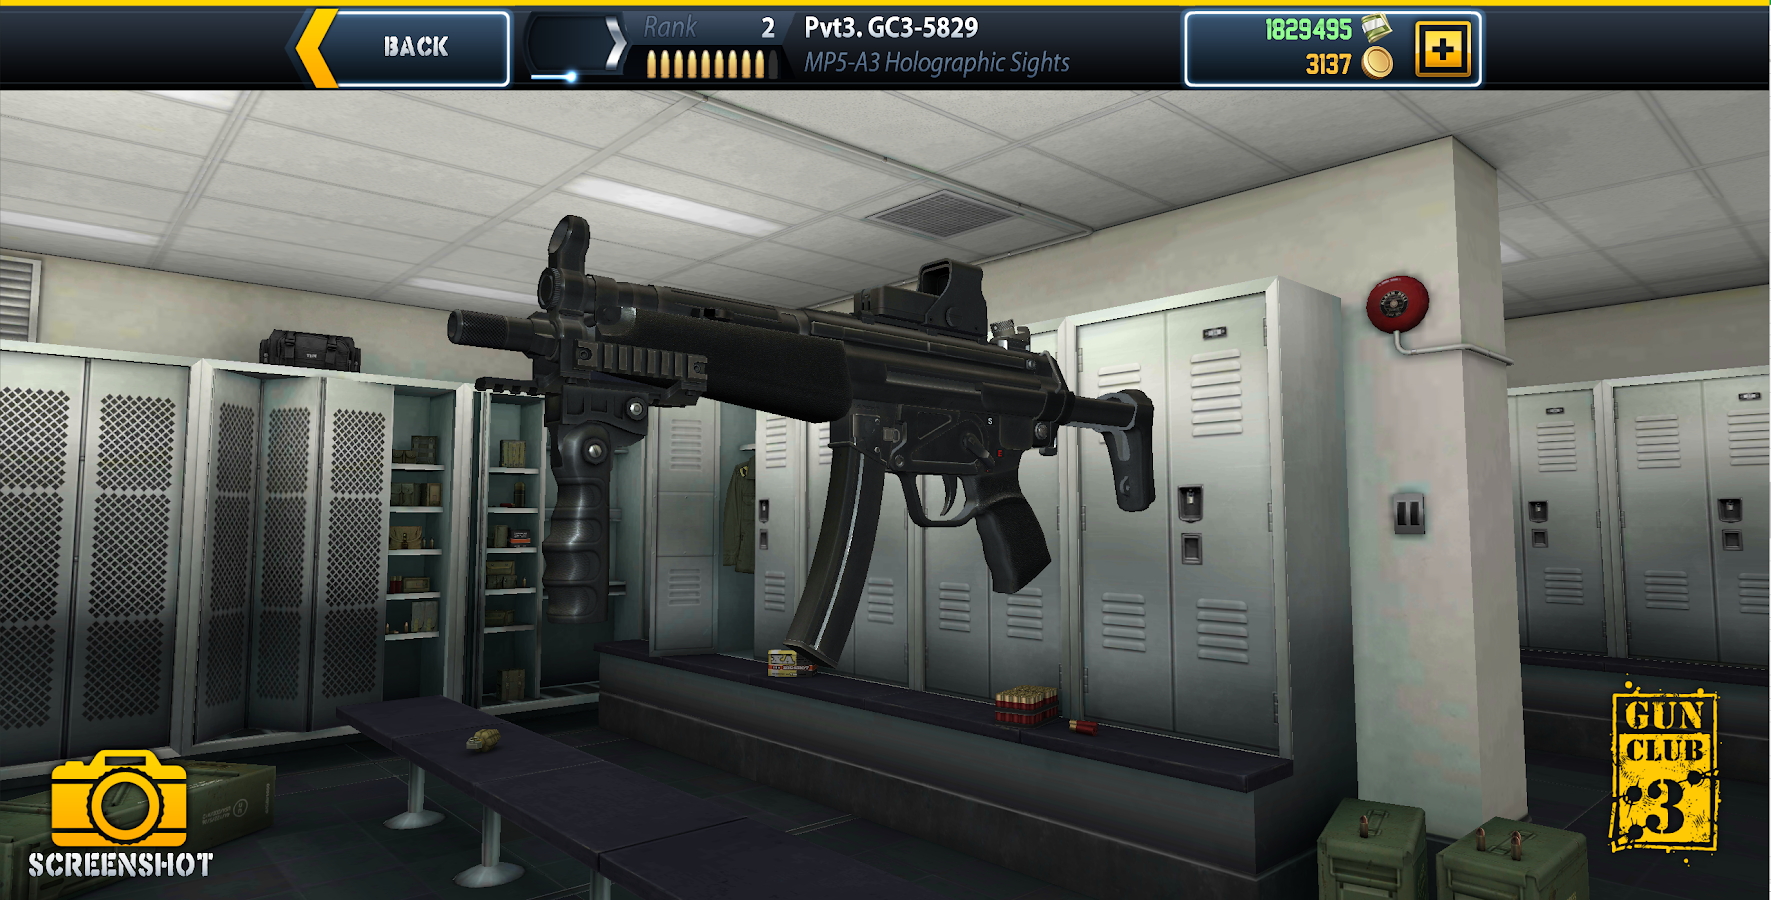 Gun Club 3: Virtual Weapon Sim: captura de tela